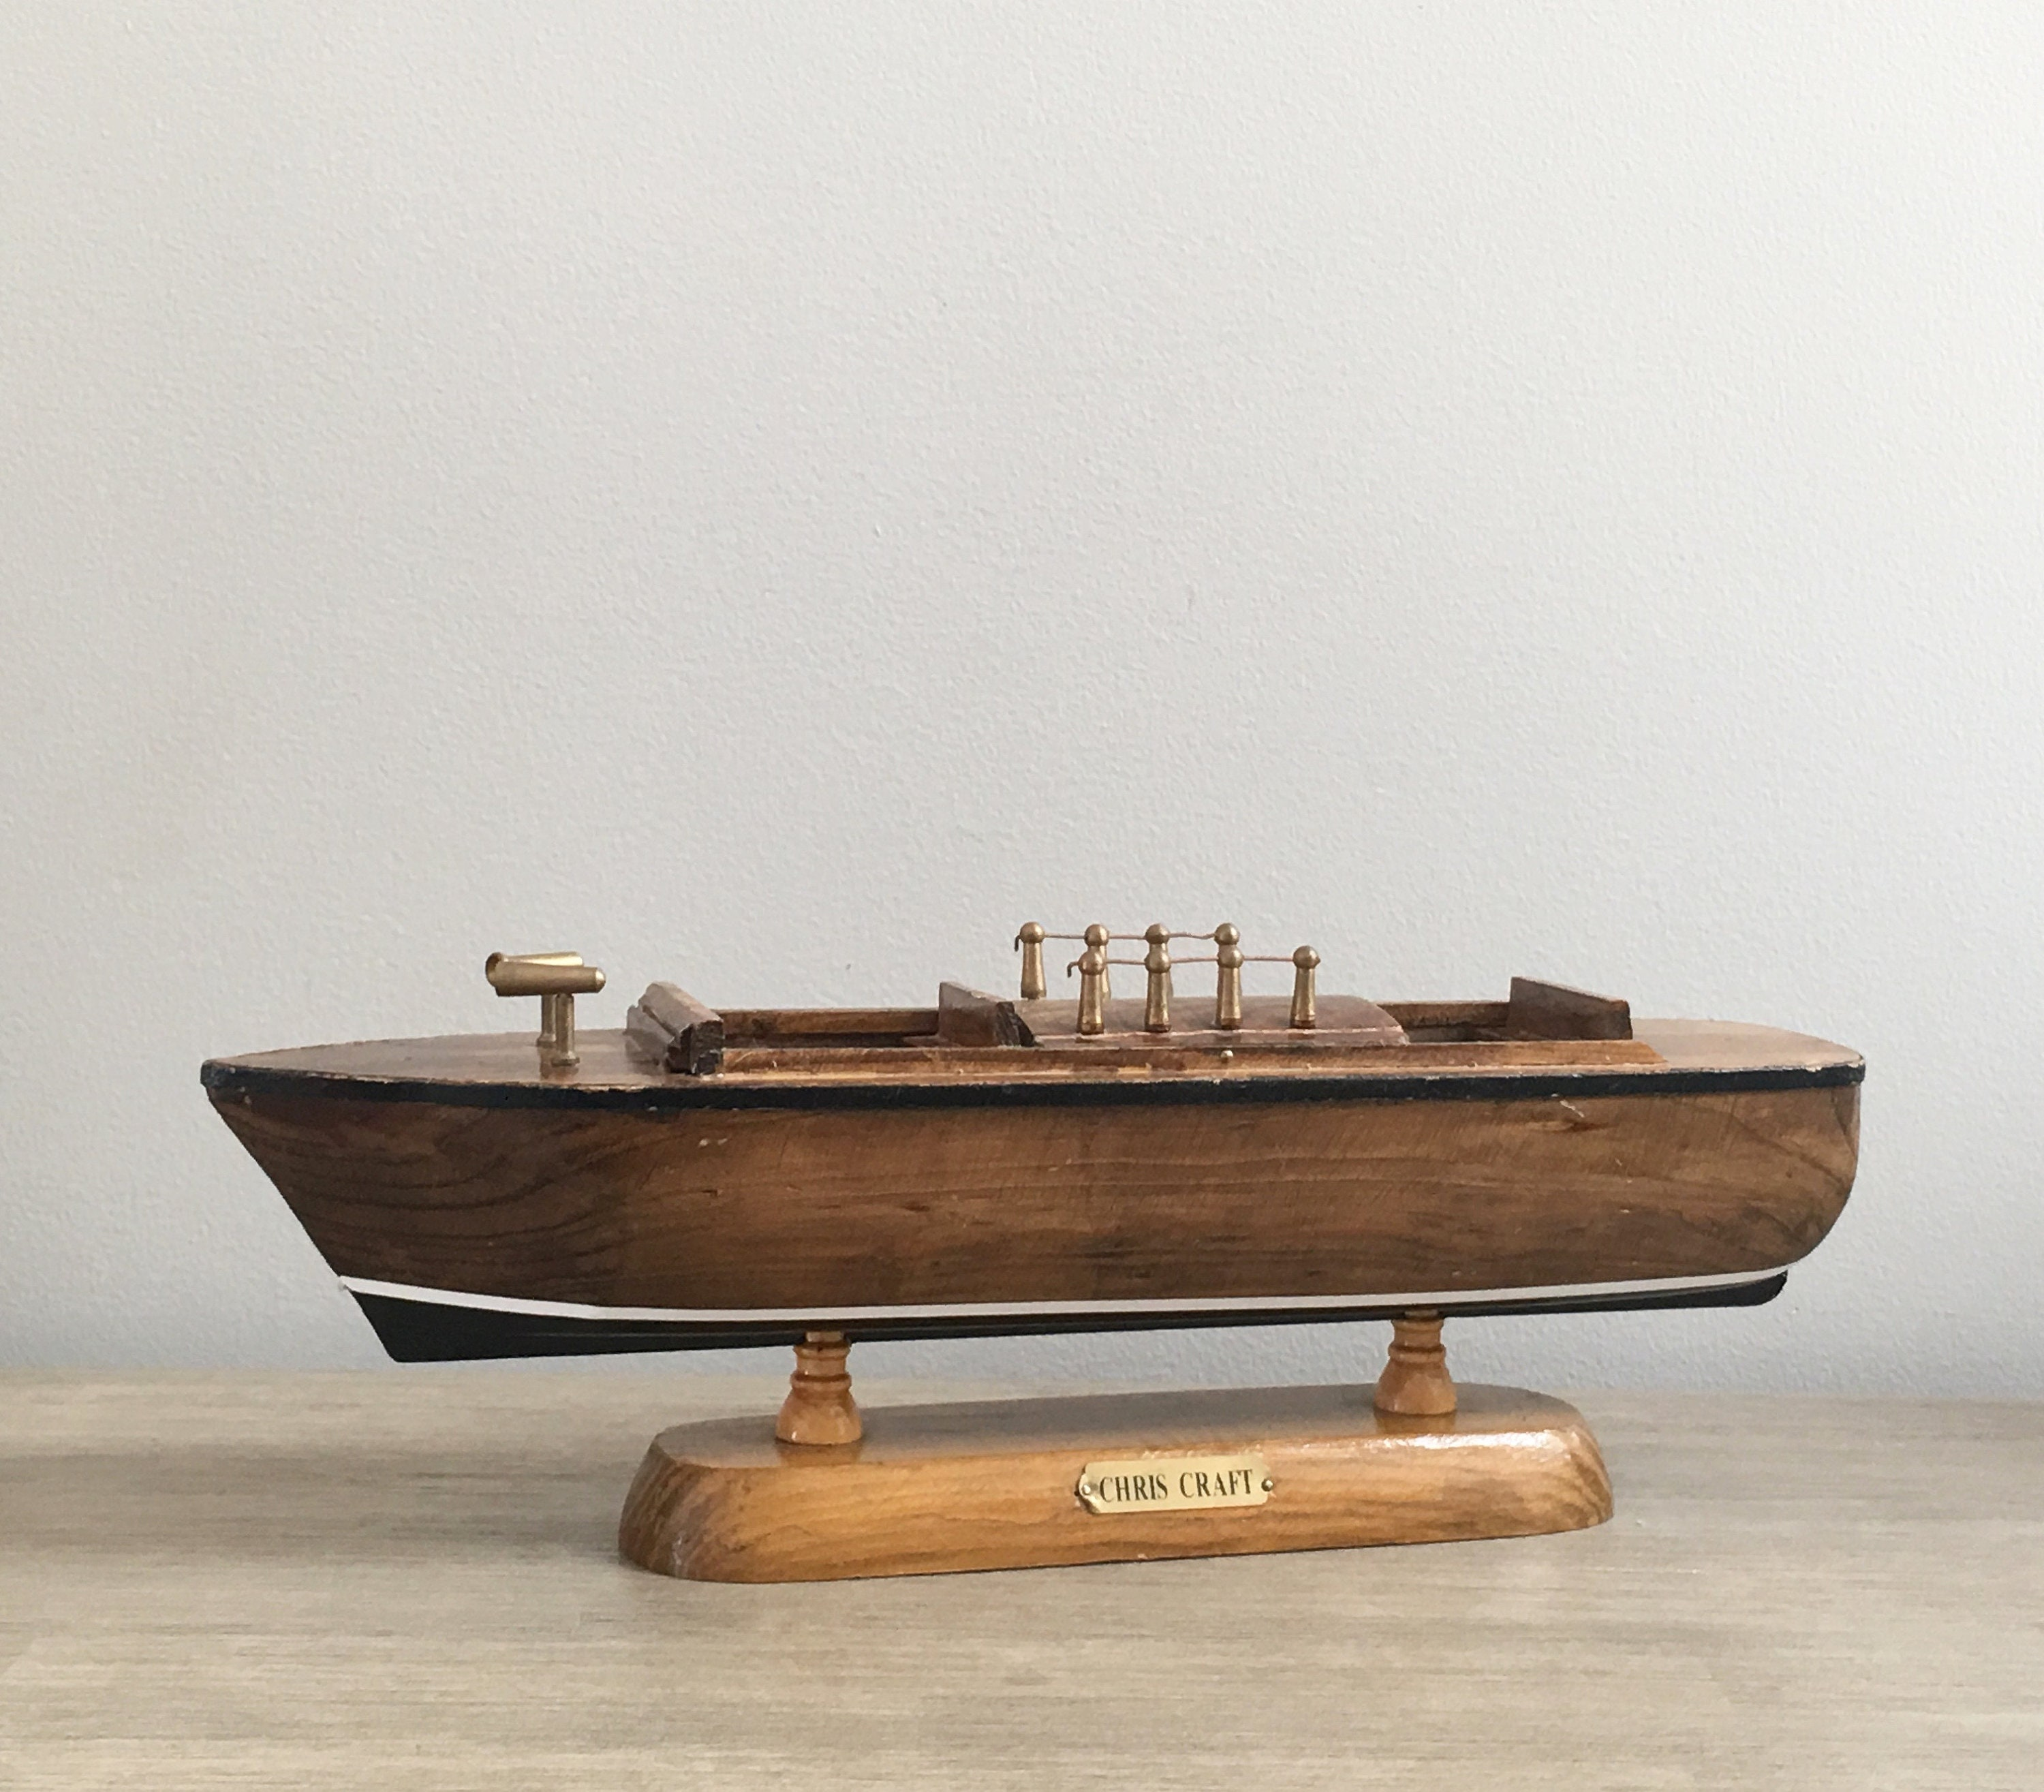 Miniature Chris Craft Runabout Cruiser Boat Model